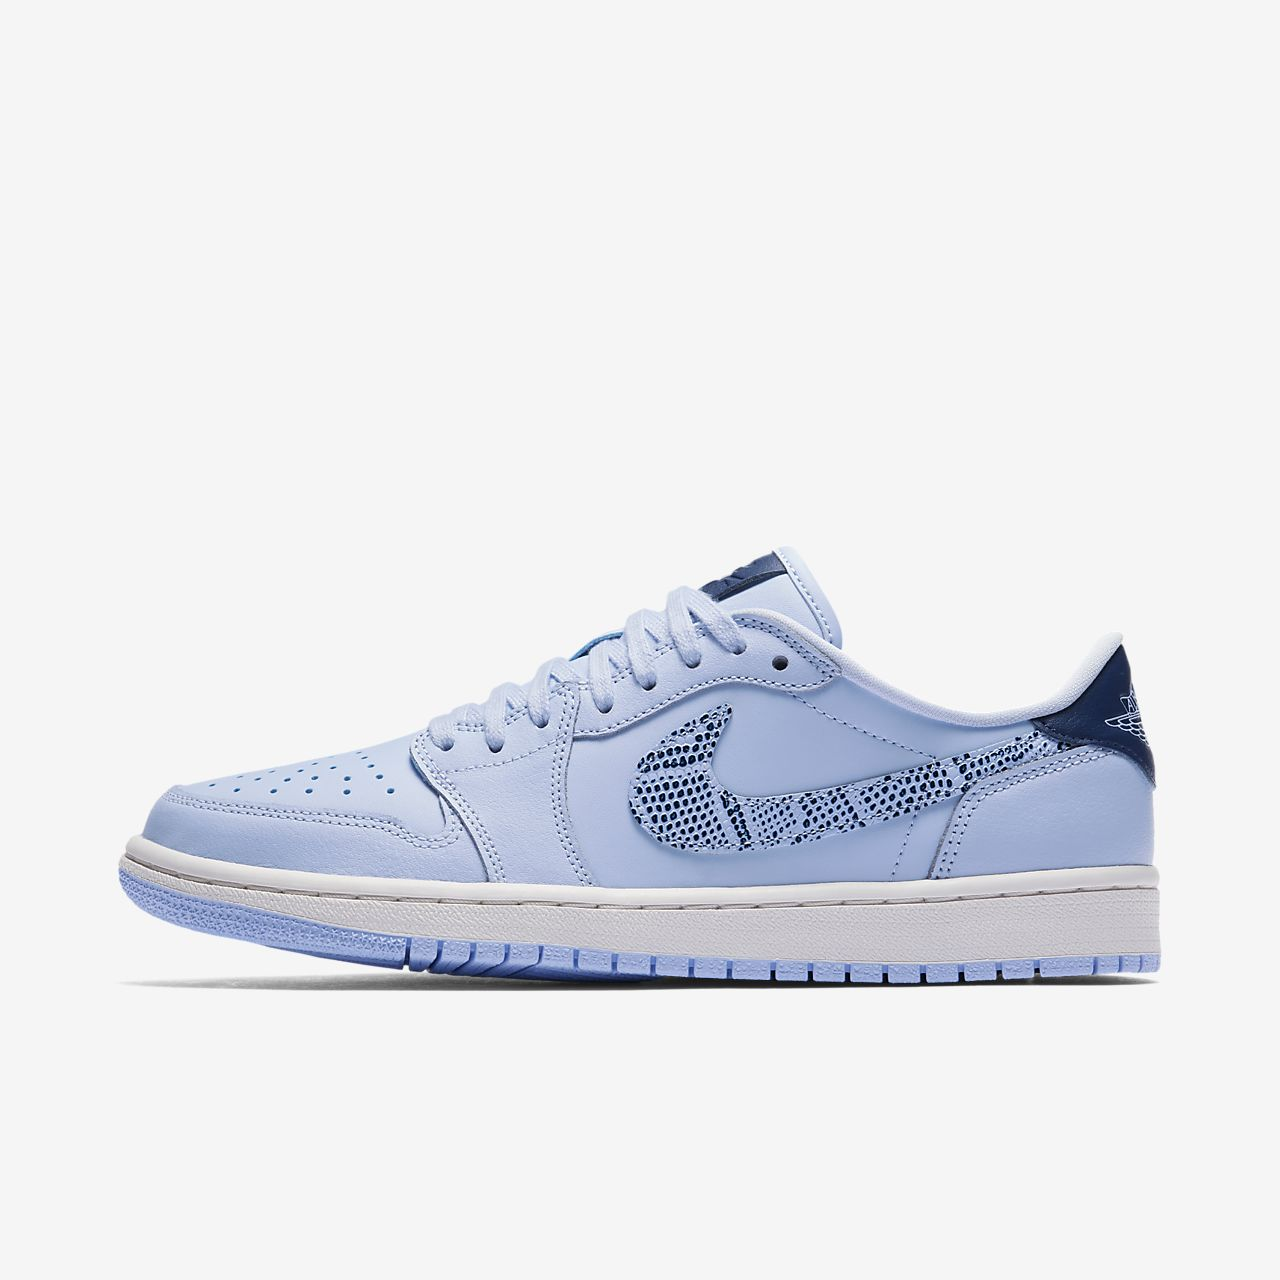 ccffbb84ede Air Jordan 1 Retro Low OG Women s Shoe. Nike.com IE